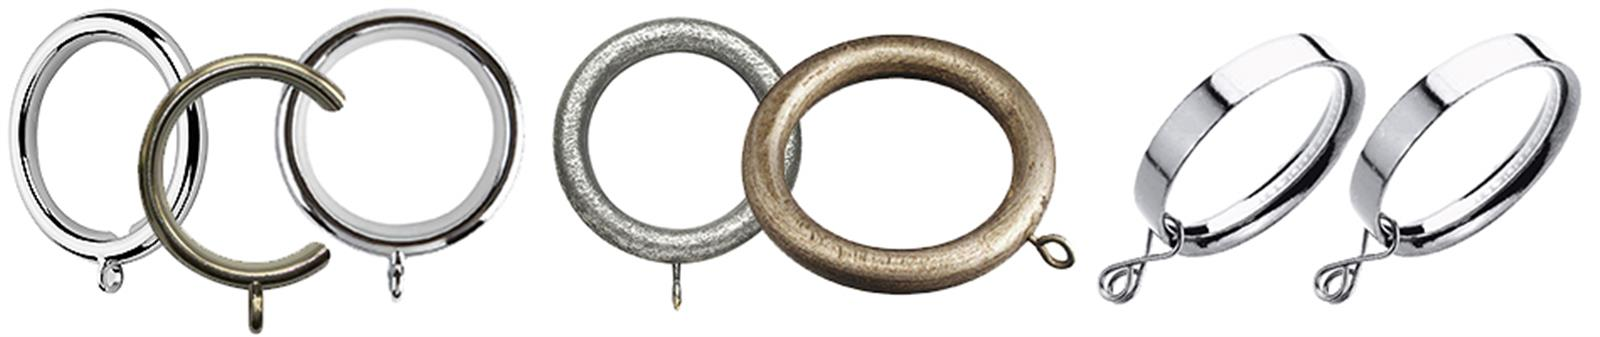 Special Offer Curtain Pole Rings & Gliders